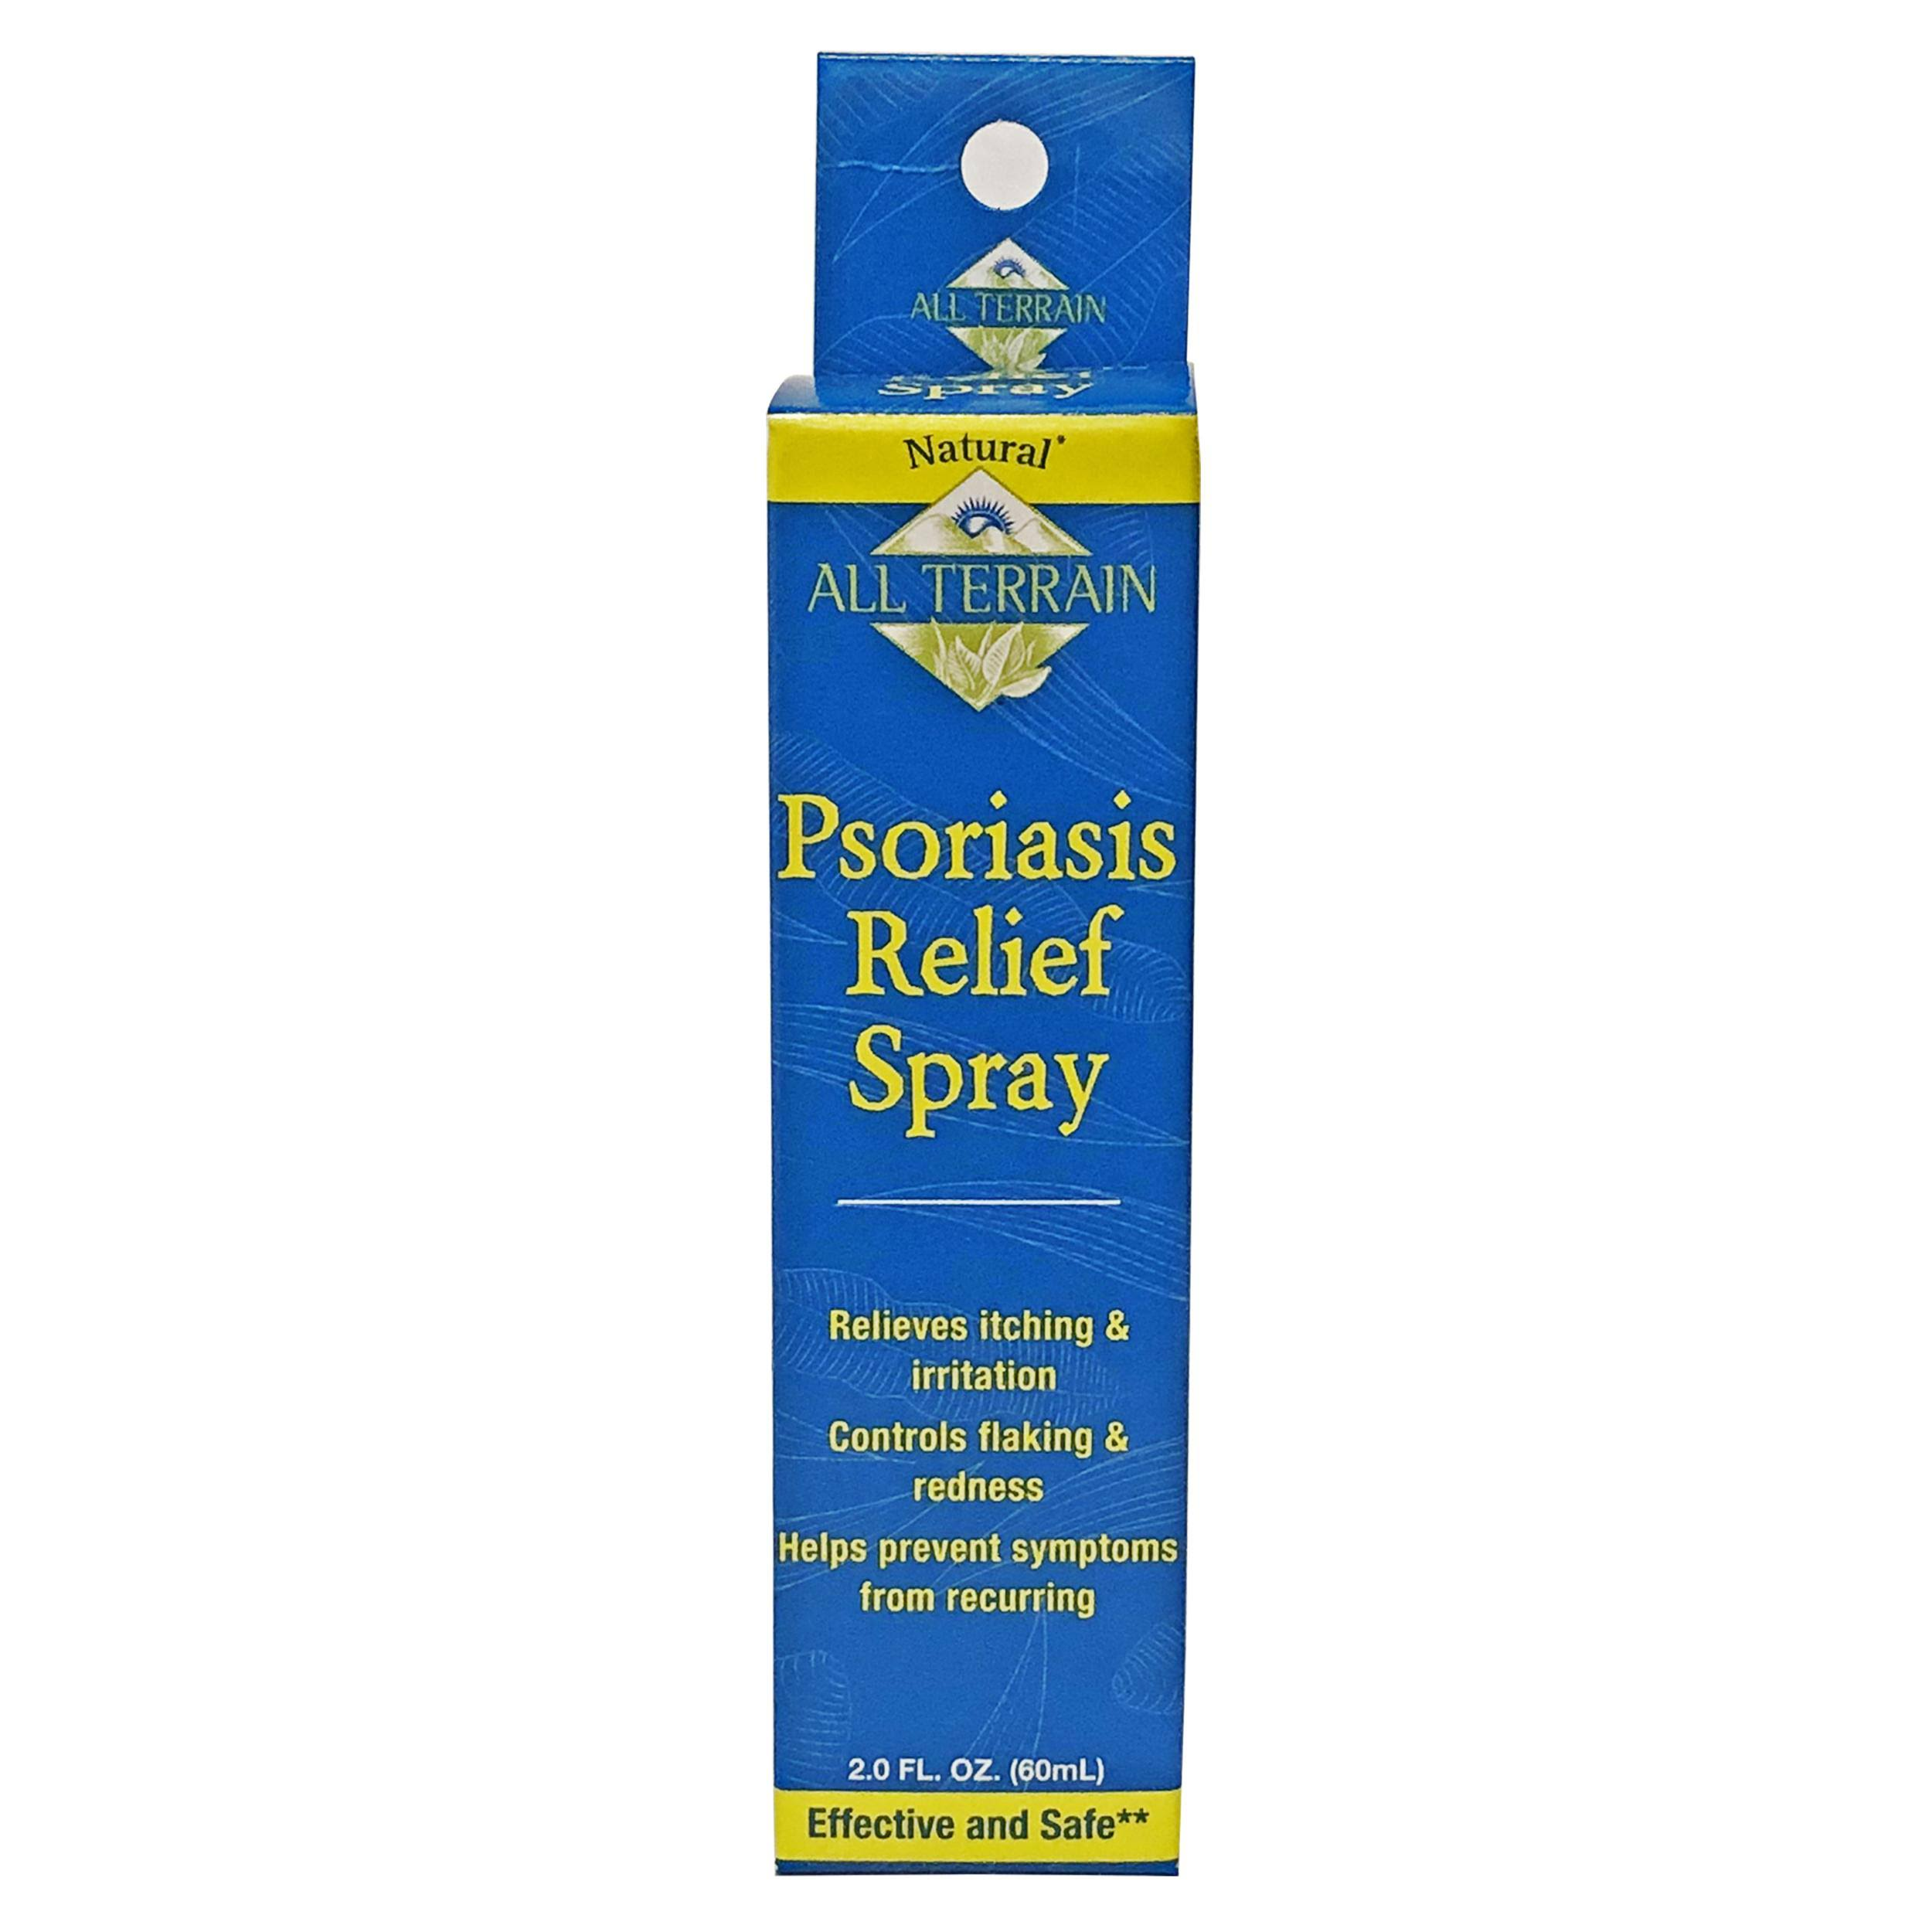 All Terrain Psoriasis Relief Spray - 2oz